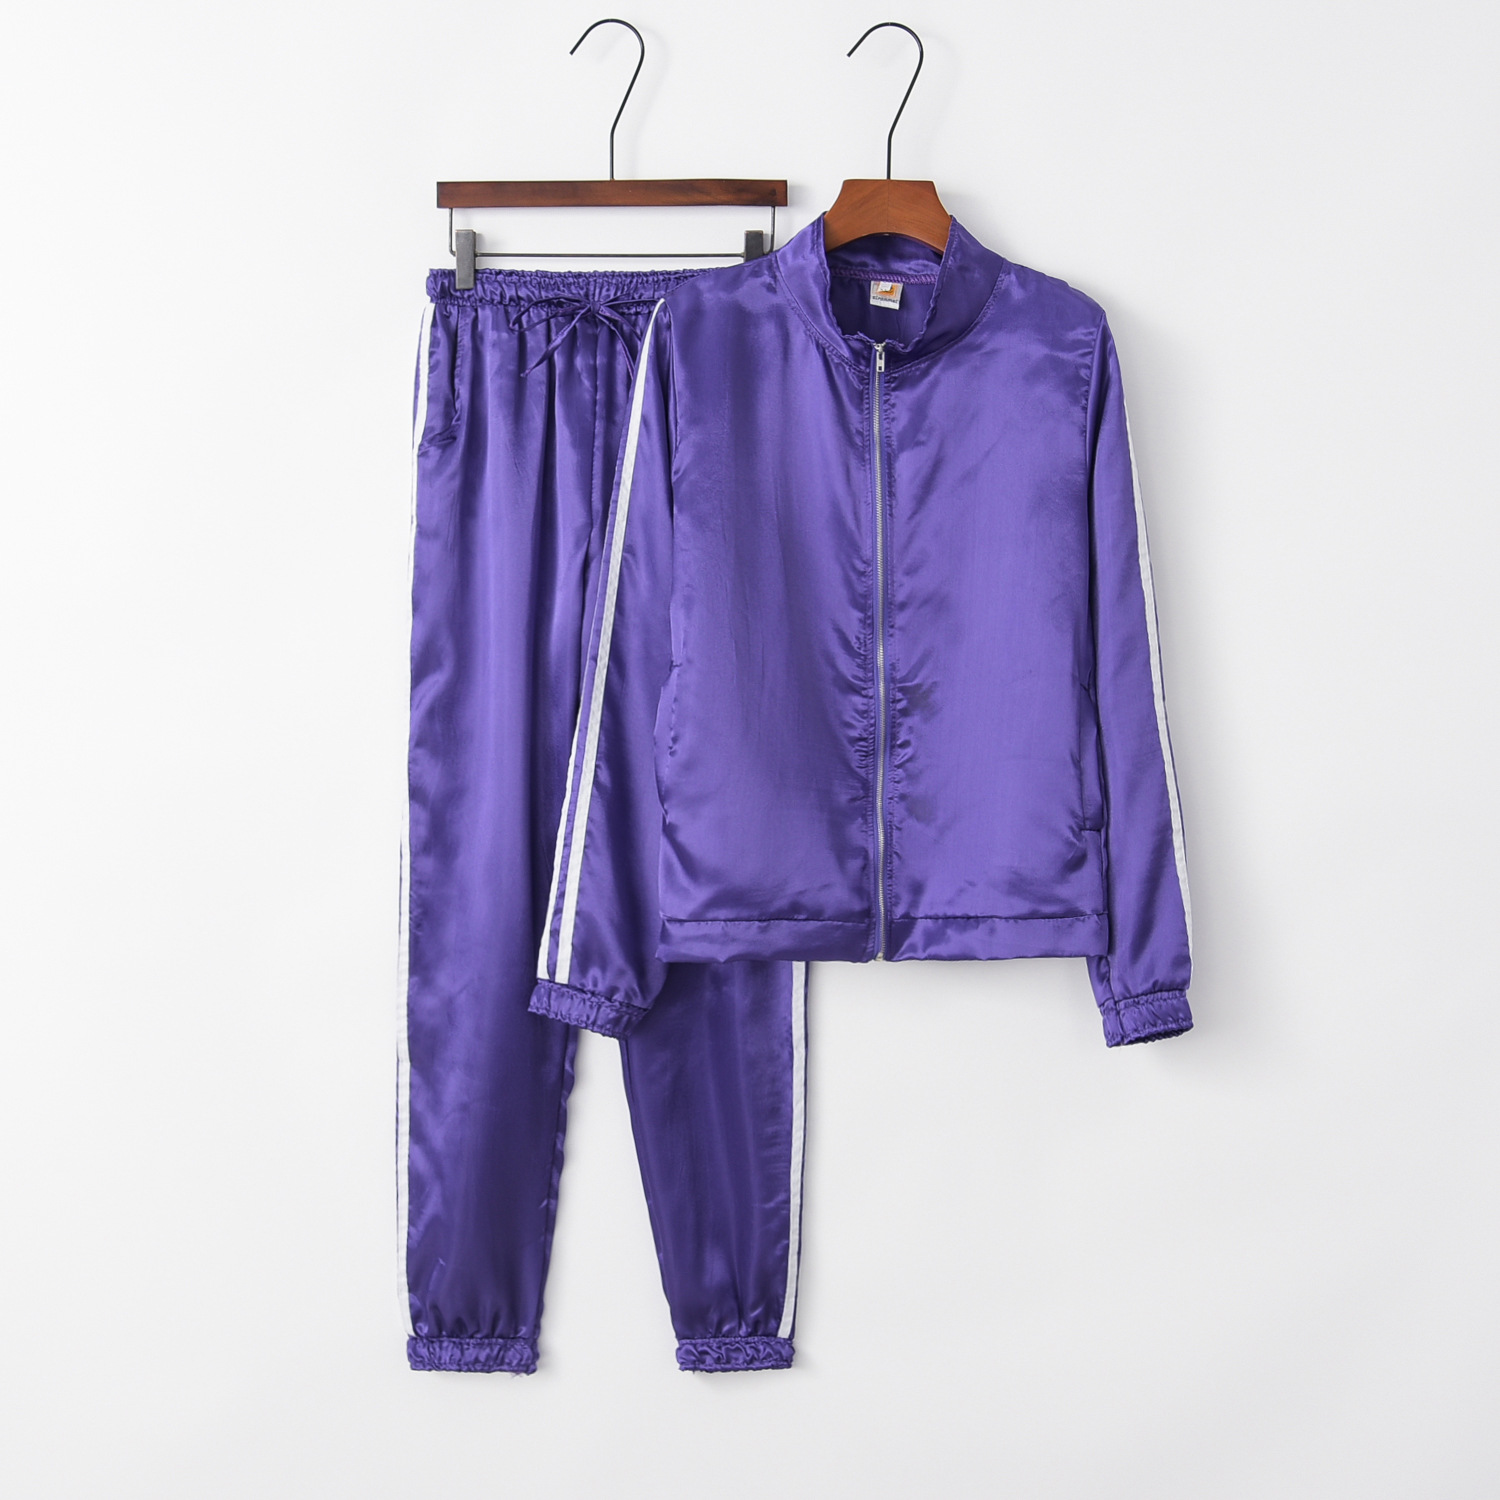 Purple Cute 2020 New Design Fashion Hot Sale Suit Set Women Tracksuit Two-piece Style Outfit Sweatshirt Sport Wear